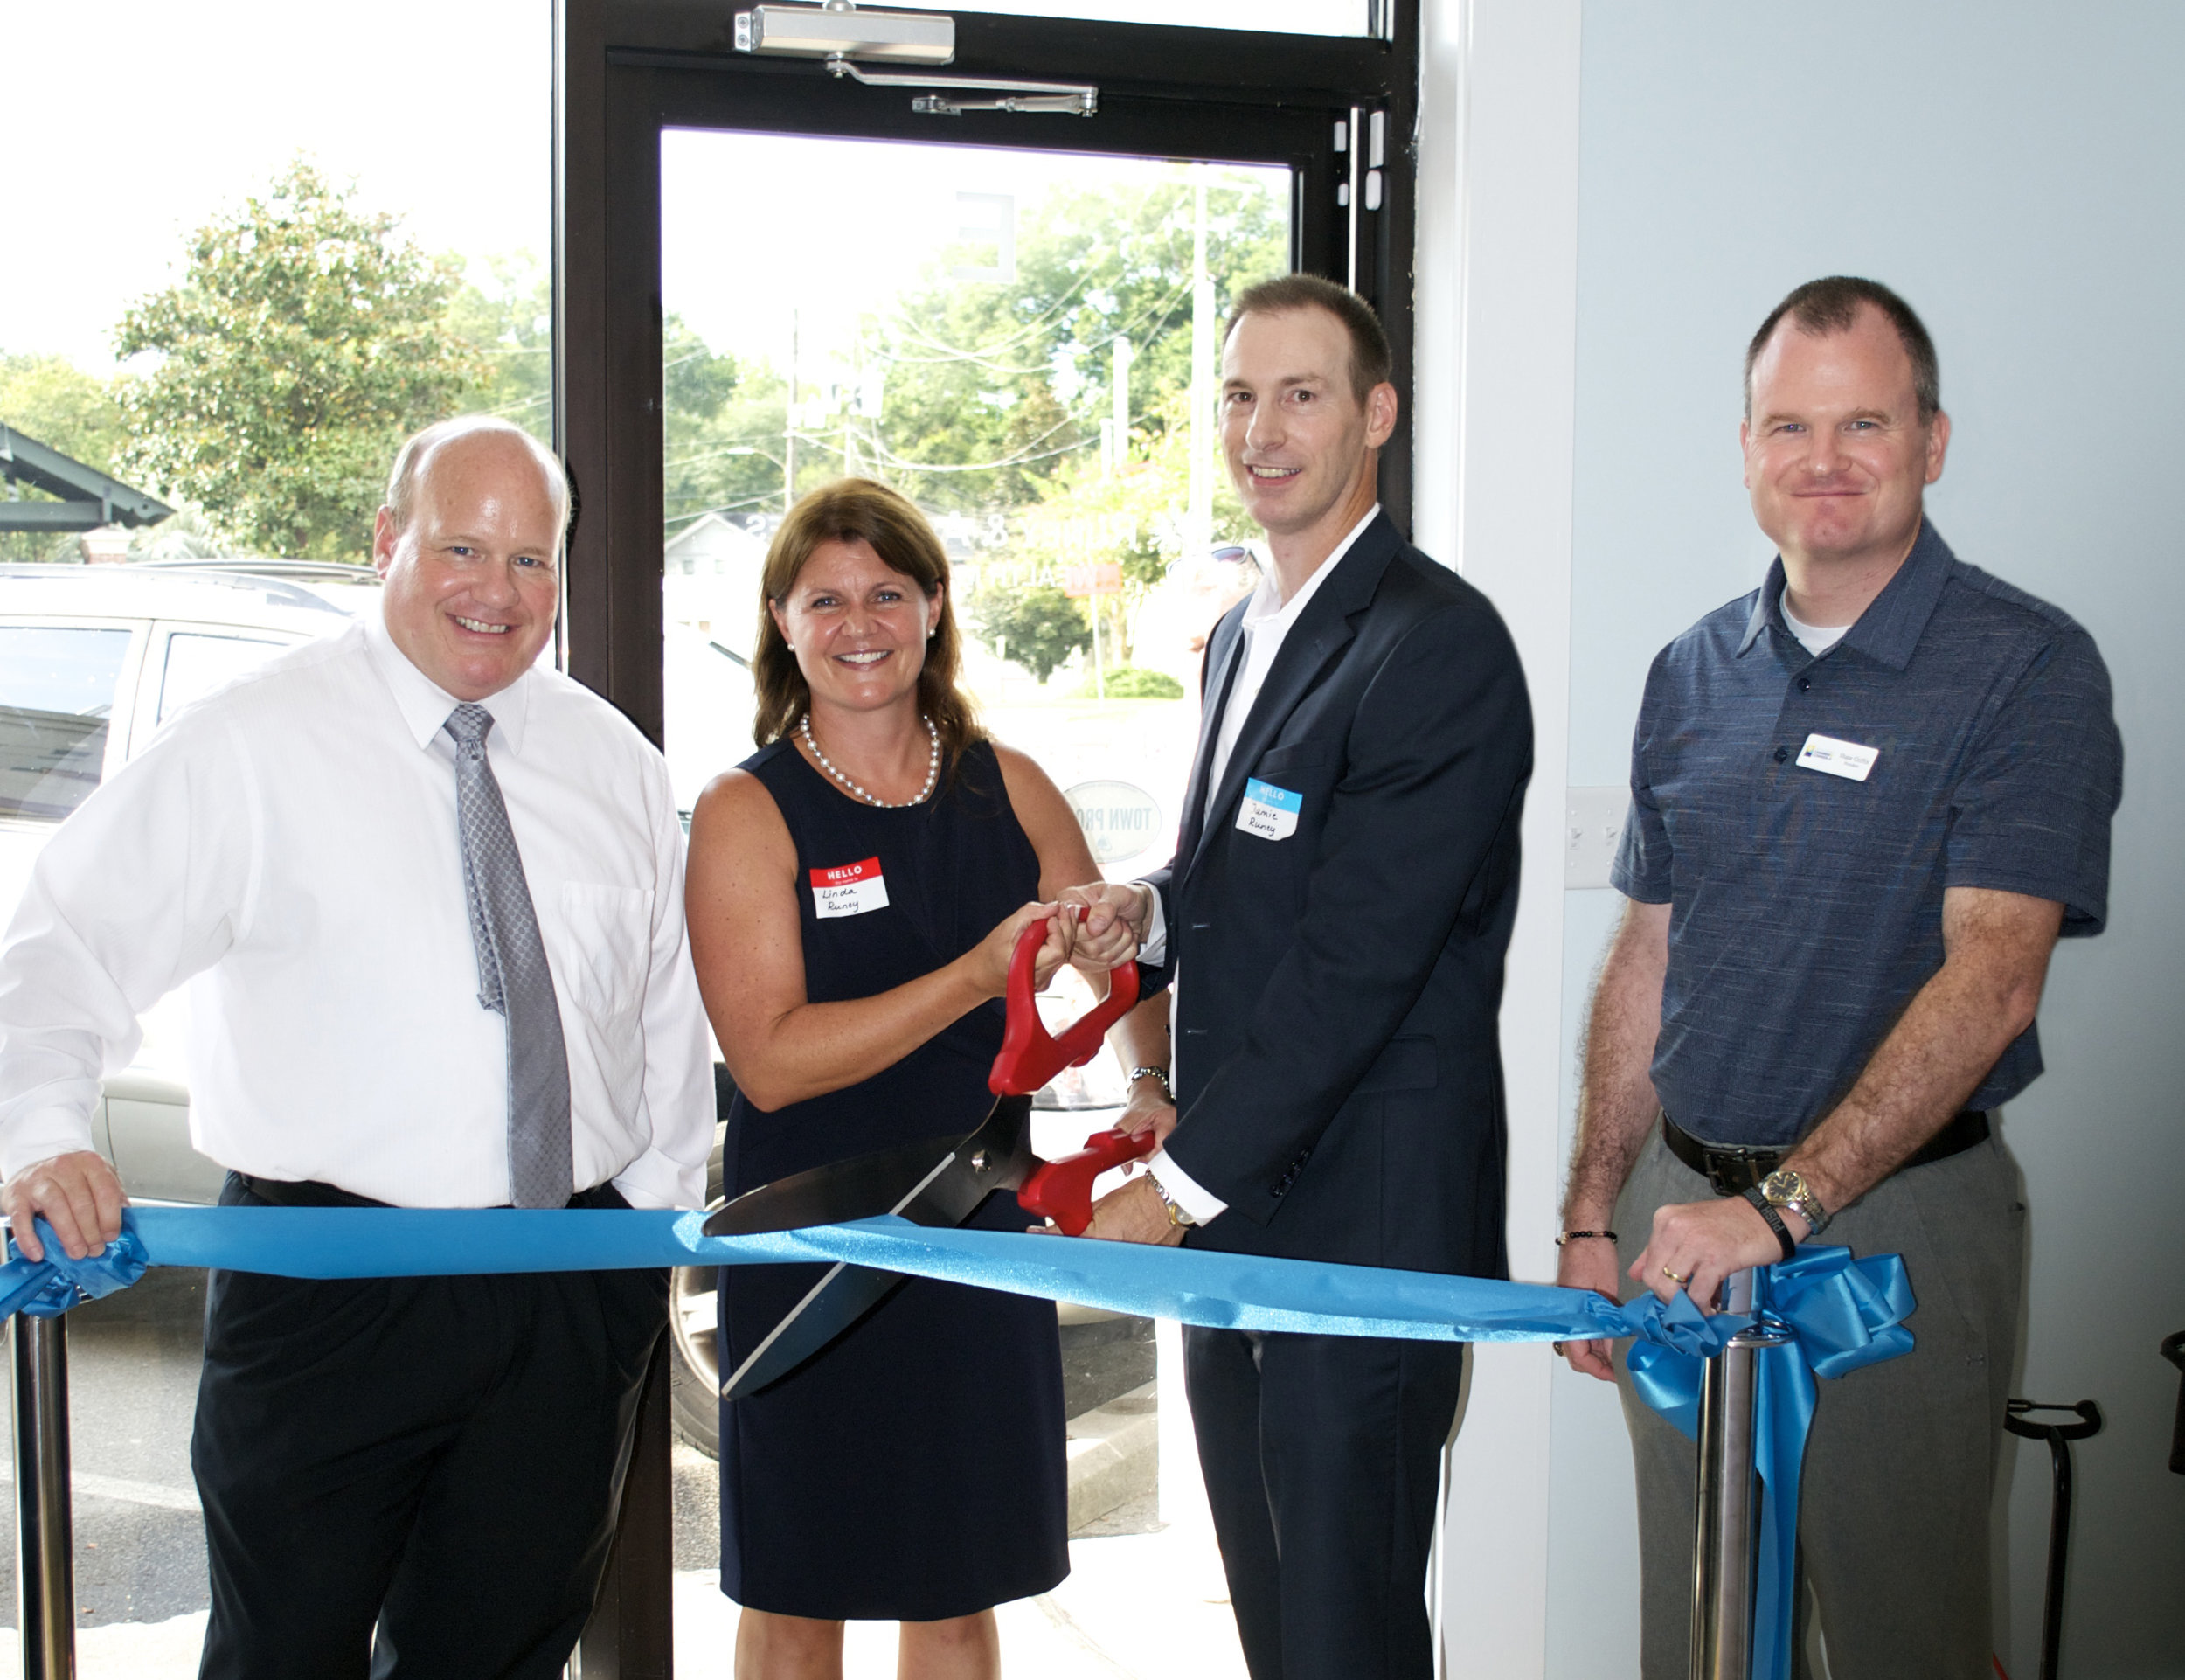 Runey & Associates Wealth Management ribbon cutting ceremony with representatives John Holladay (left) from the Town of Mount Pleasant and Shane Griffin (right) from the Mount Pleasant Chamber of Commerce